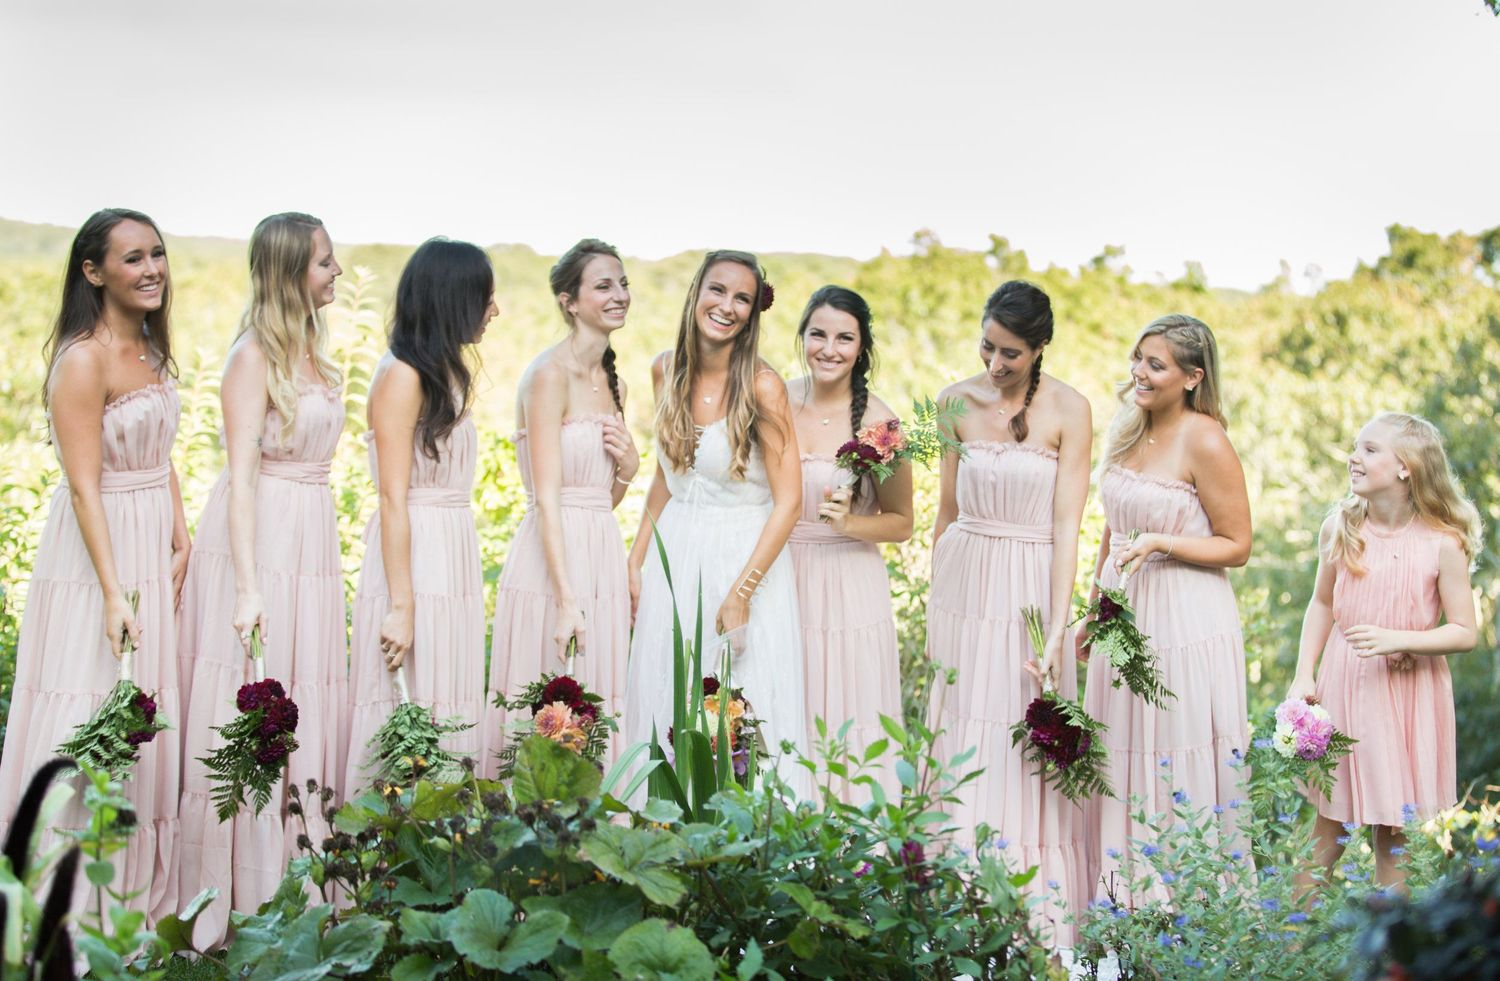 Bridesmaid Dresses Inspiration